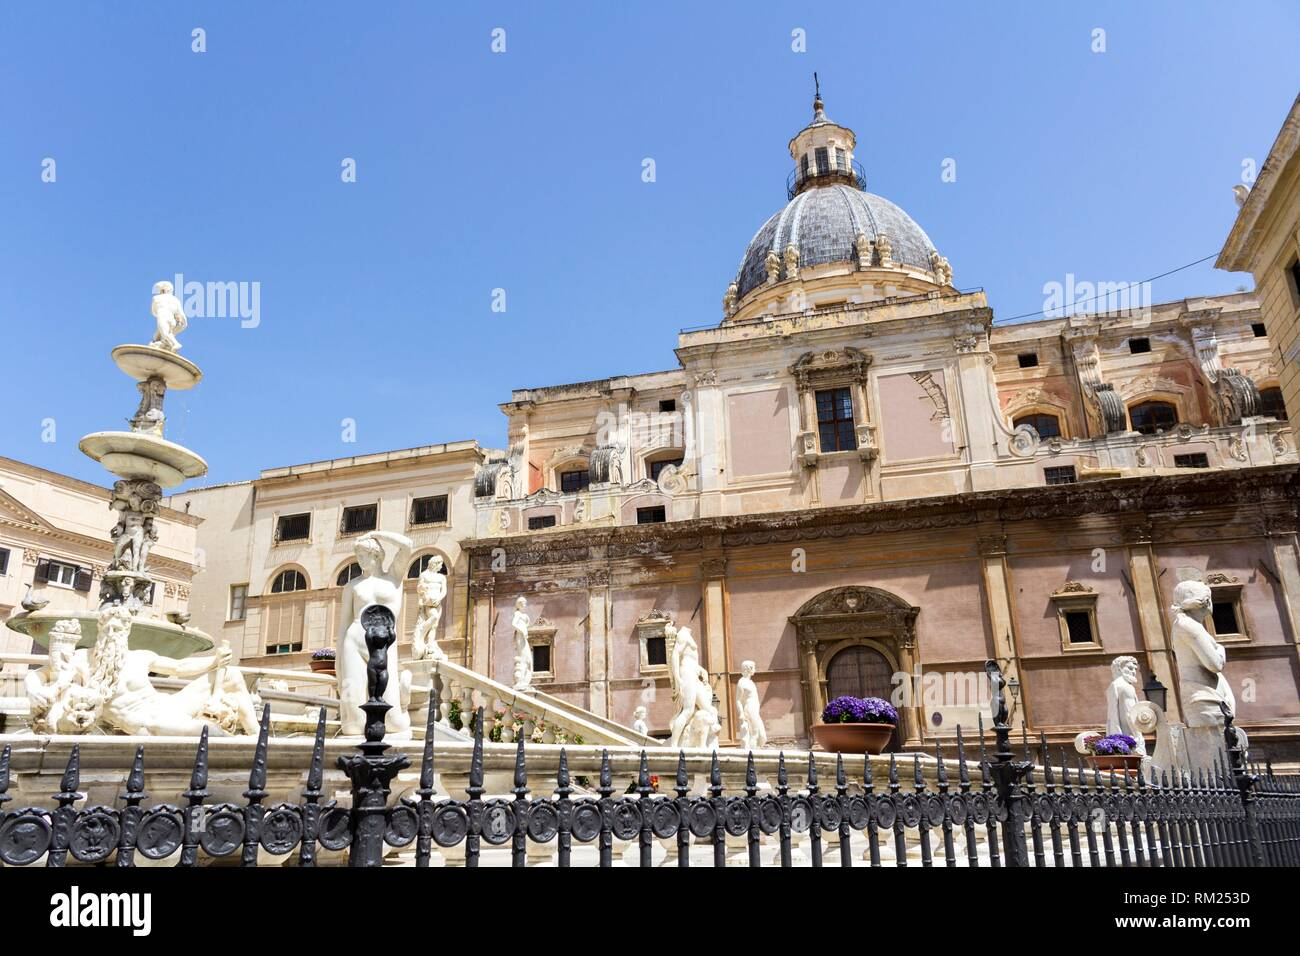 Piazza Pretoria also known as square of Shame. Palermo, Sicily. Italy. - Stock Image